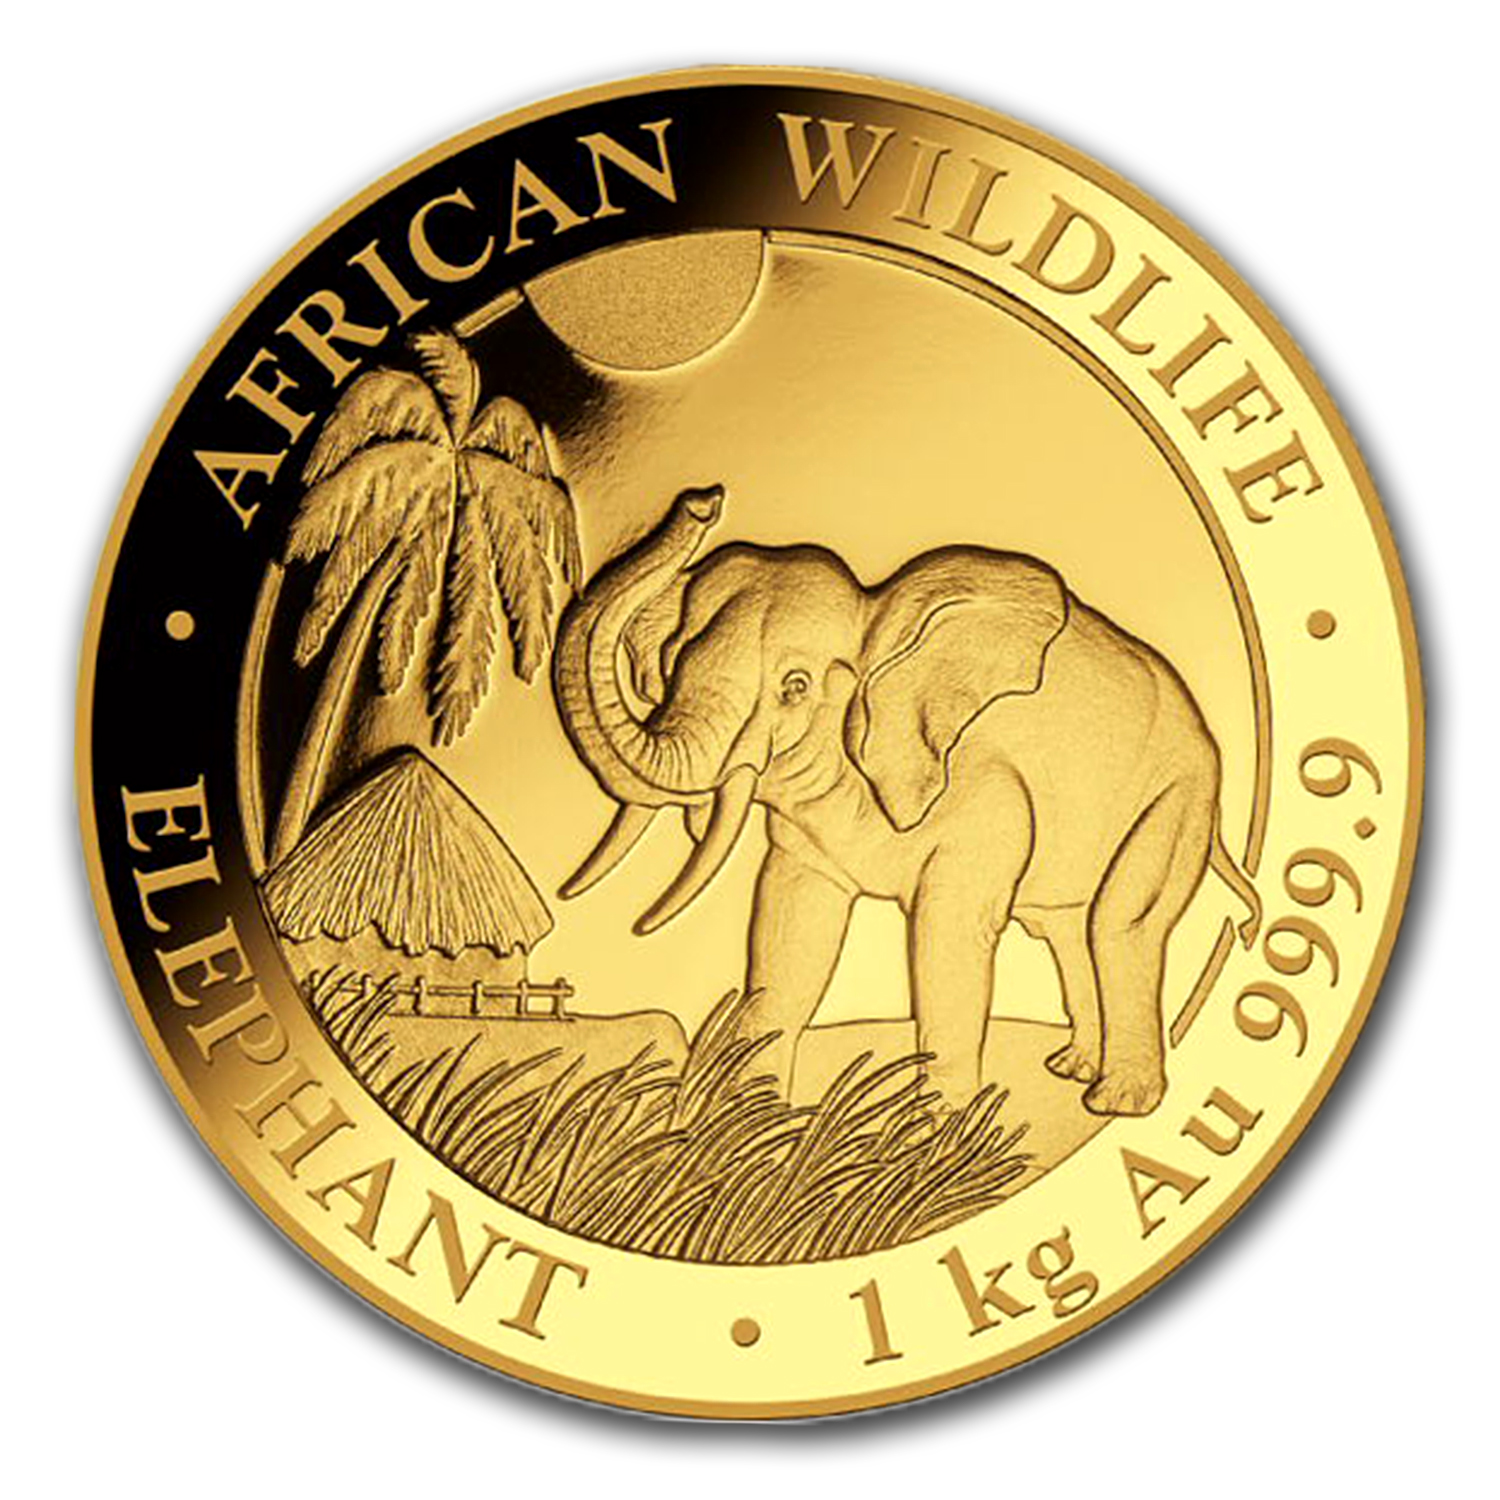 2017 Somalia 1 kilo Gold African Elephant (Proof)